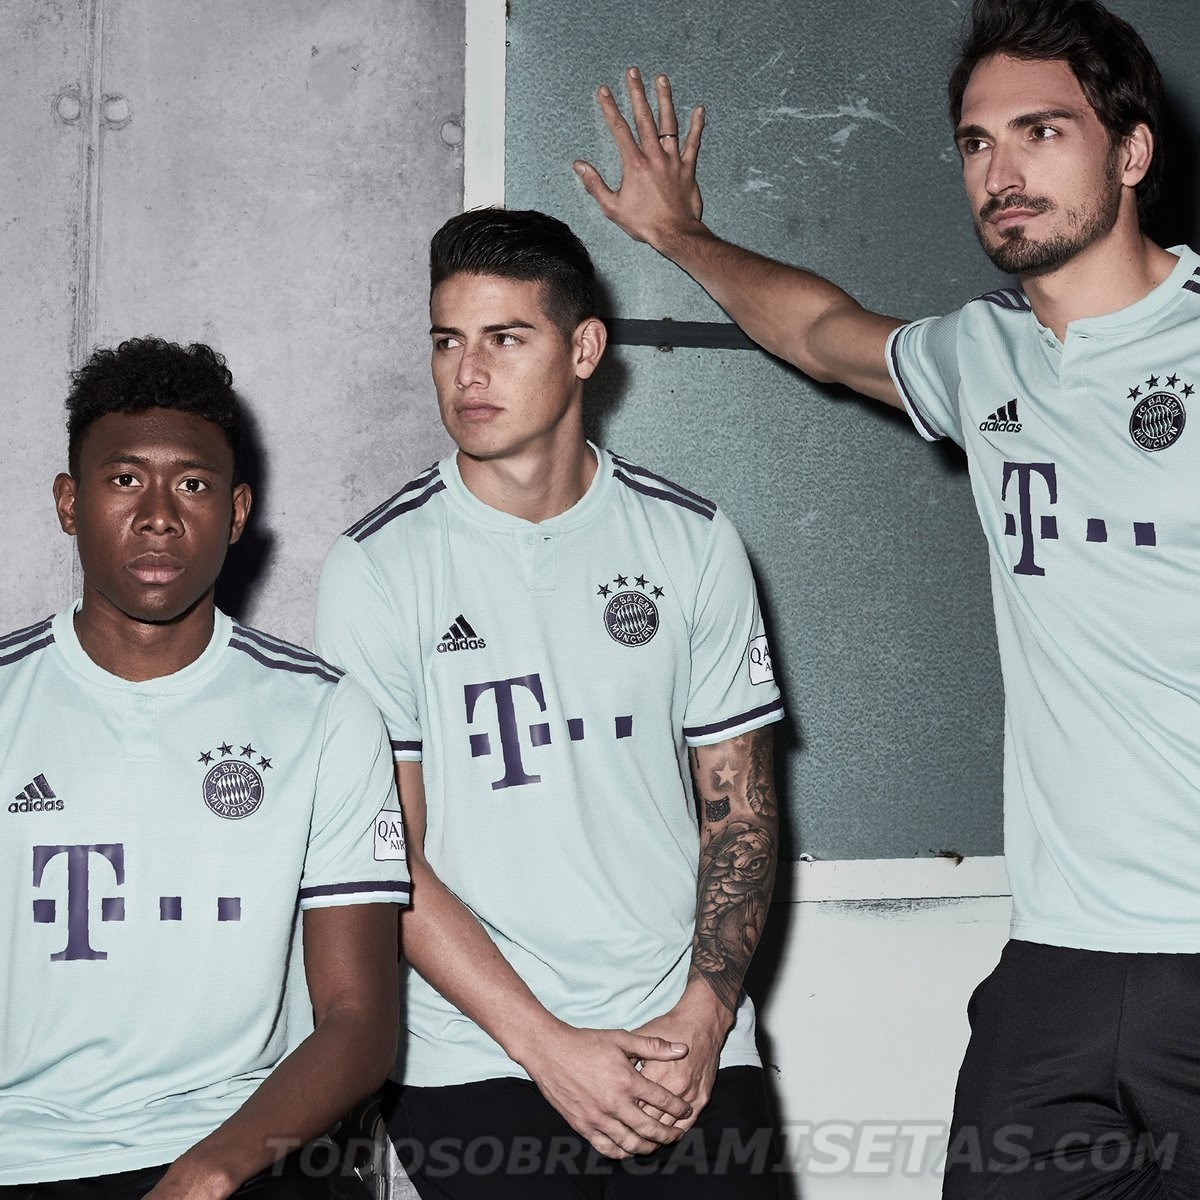 Bayern-Munich-2018-19-adidas-new-away-kit-11.jpg